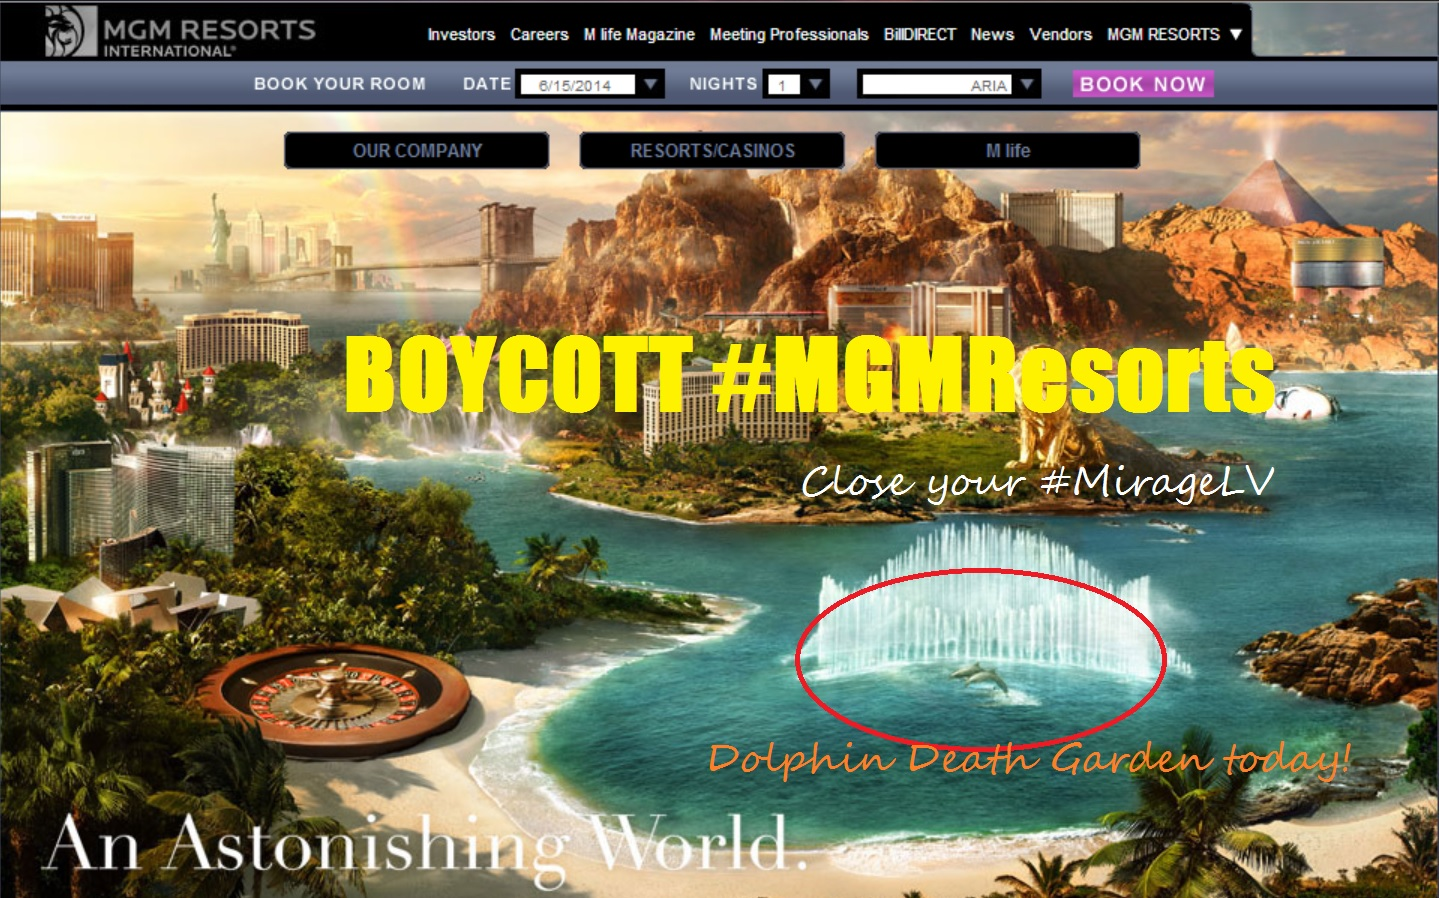 Take the pledge and sign the petition taking the pledge to boycott the mgmresorts until